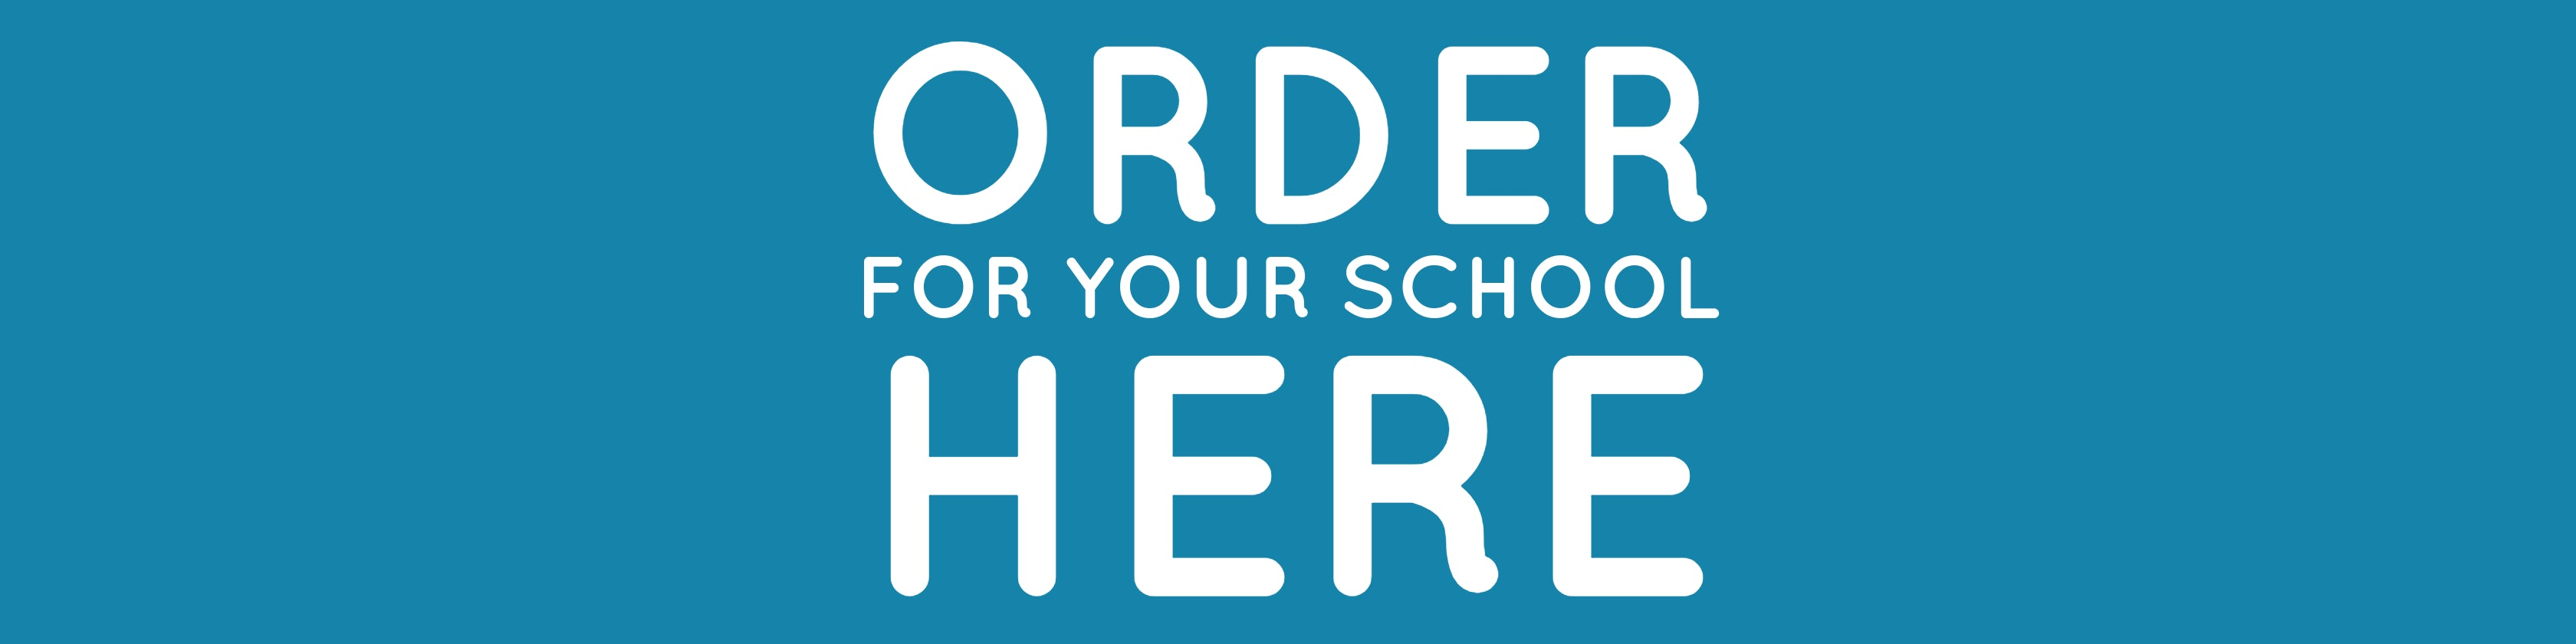 Order for your school here